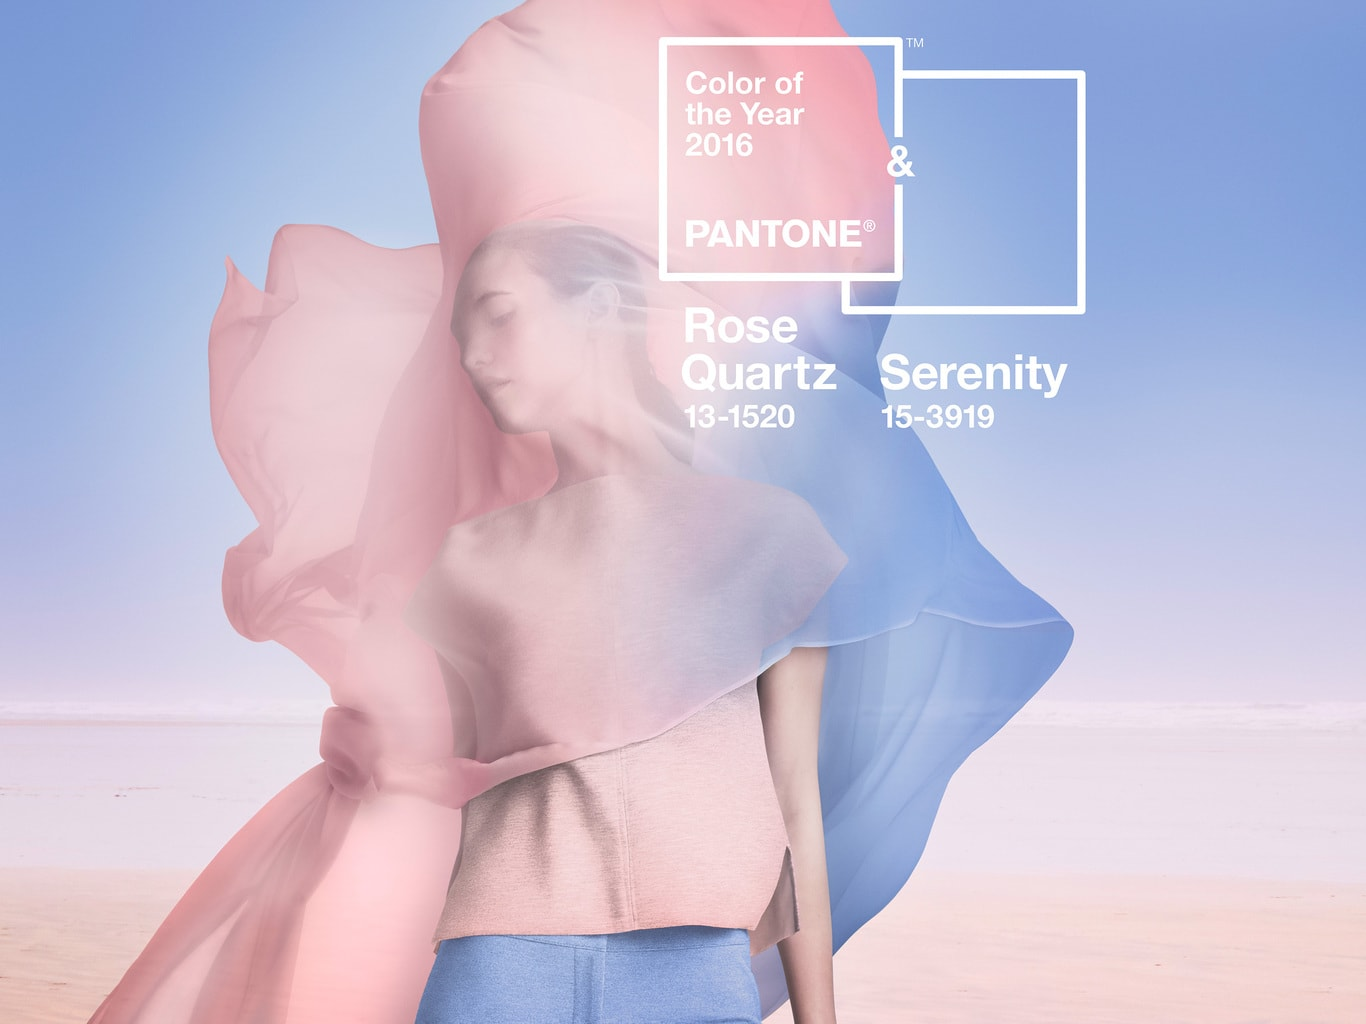 Pantone colors of the year 2016: Rose Quartz and Serenity